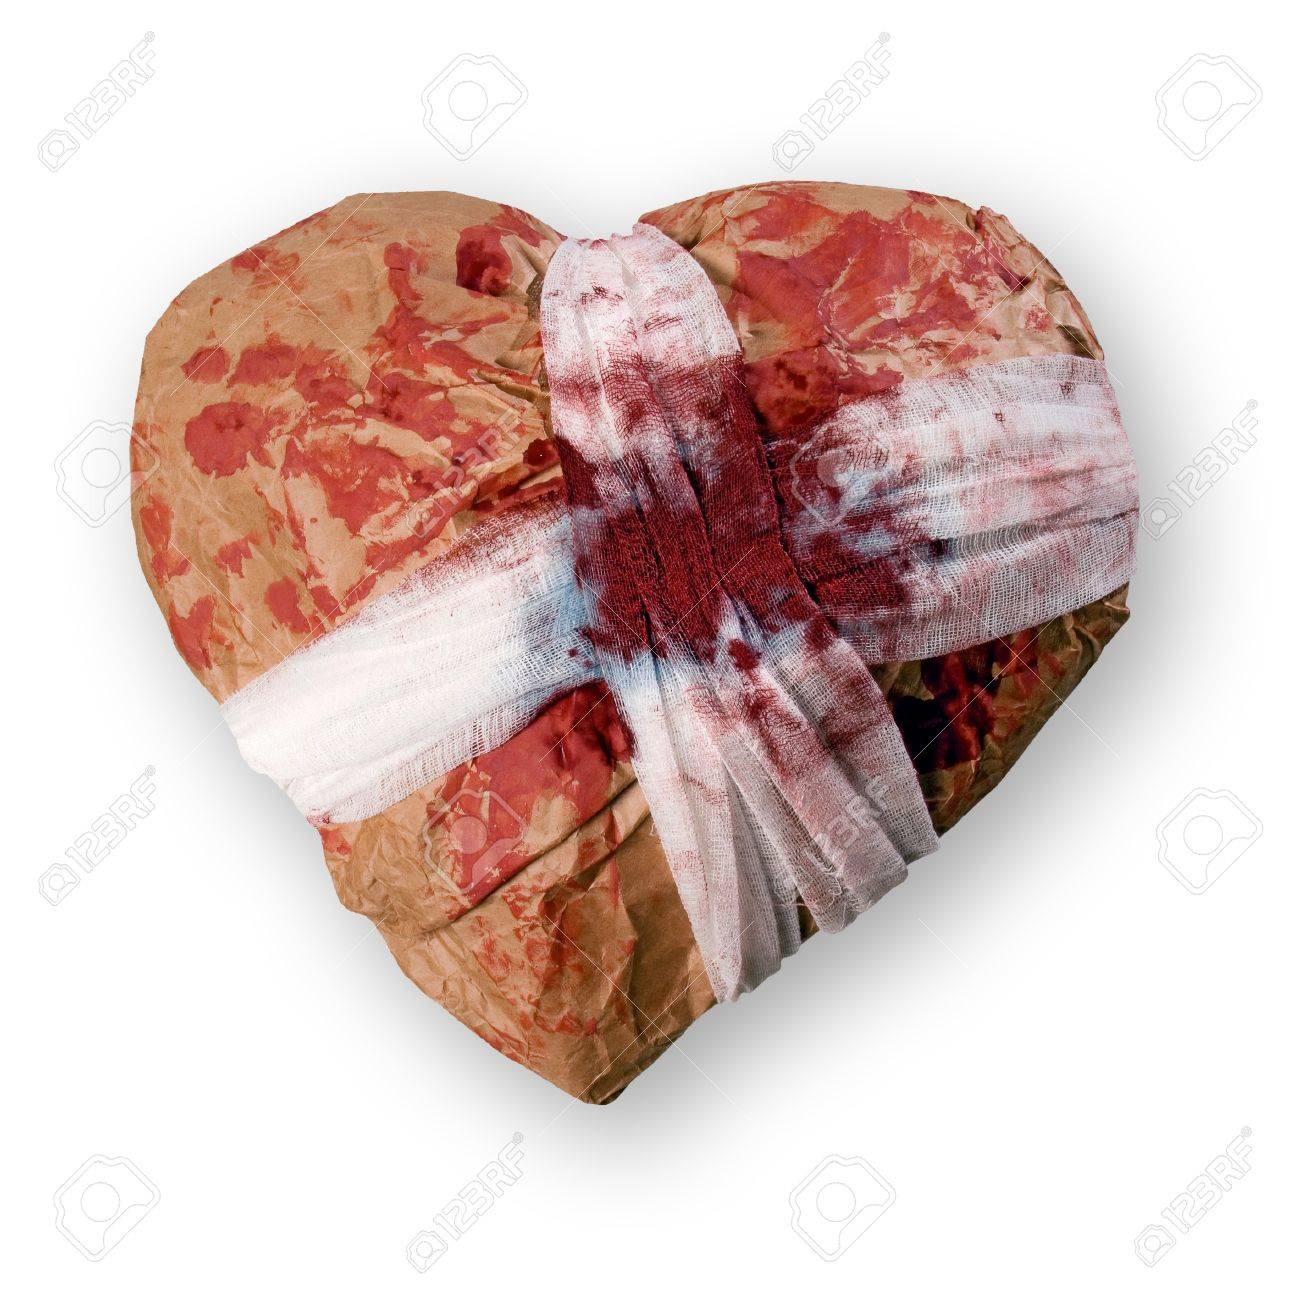 My heart - gift for you! (Injured heart isolated on white background). Stock Photo - 8415446